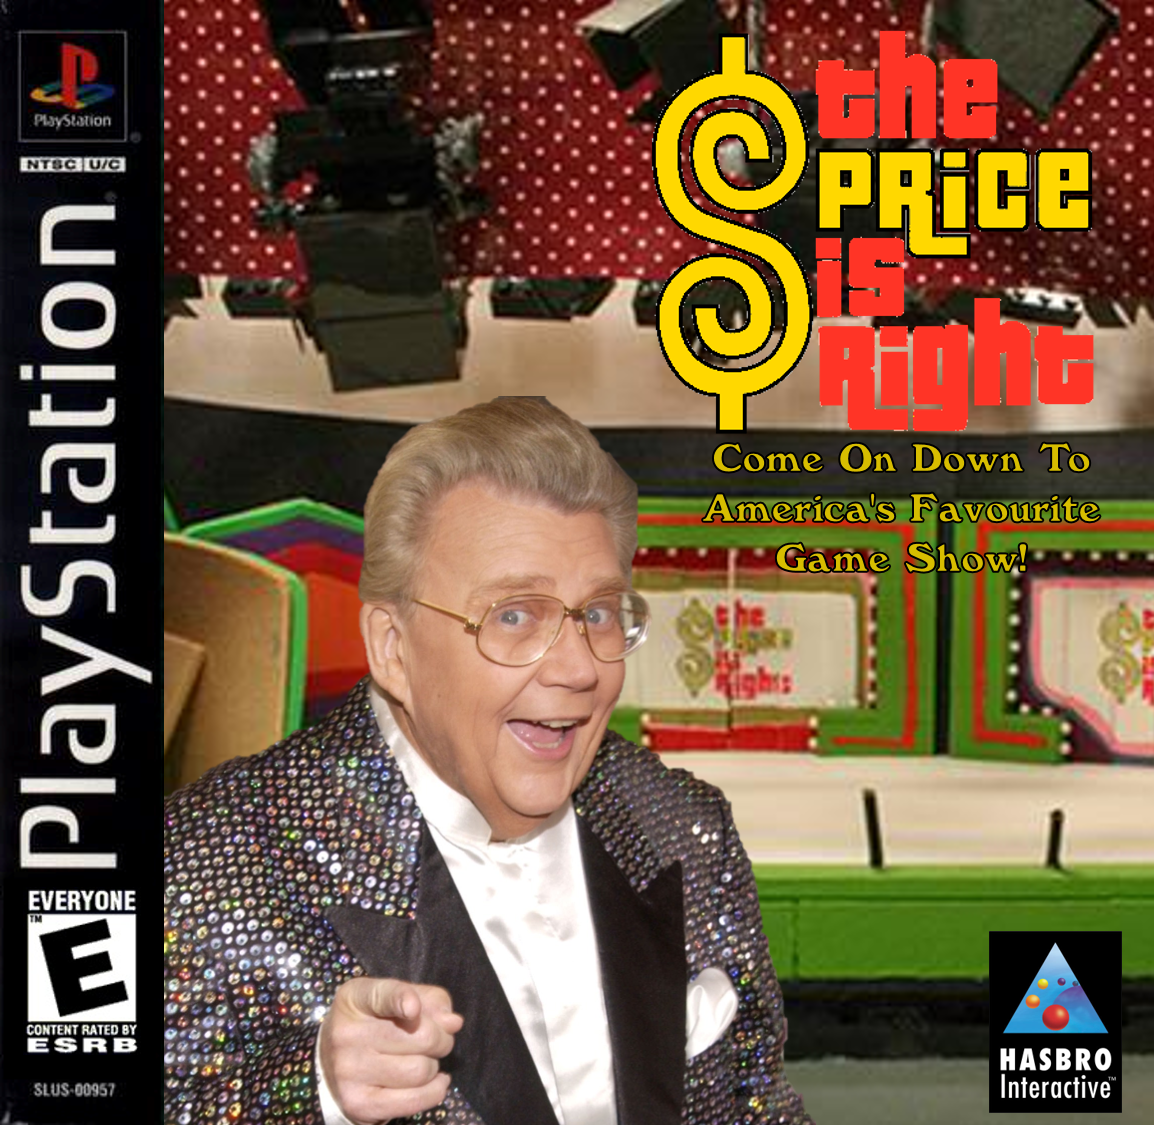 The Price is Right (Artech Studios)